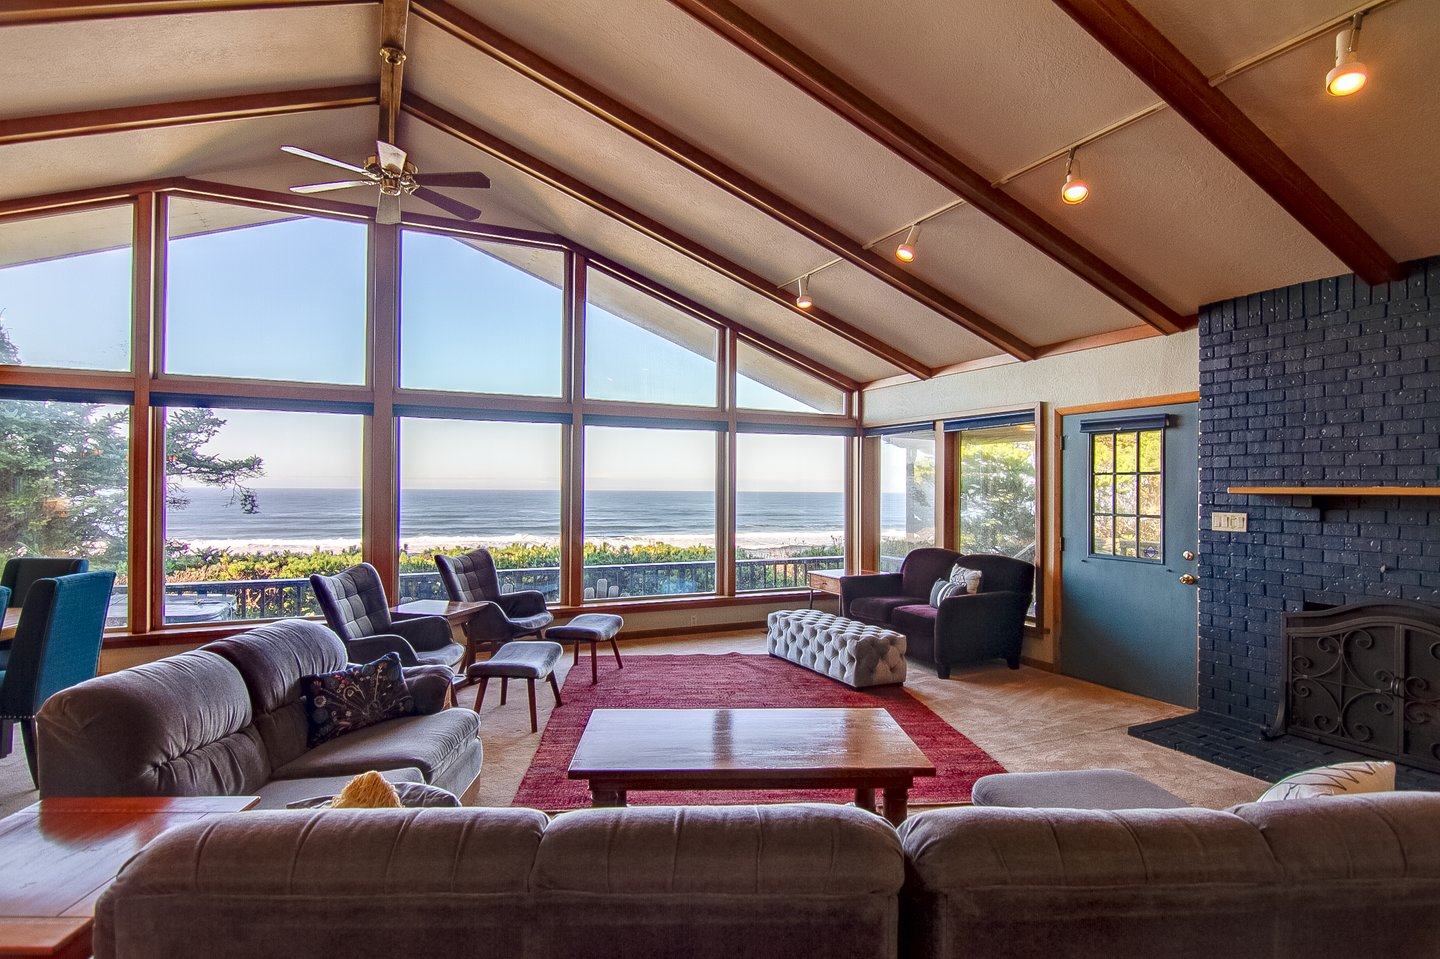 There is plenty of room for everyone to gather in the living room and enjoy the view!